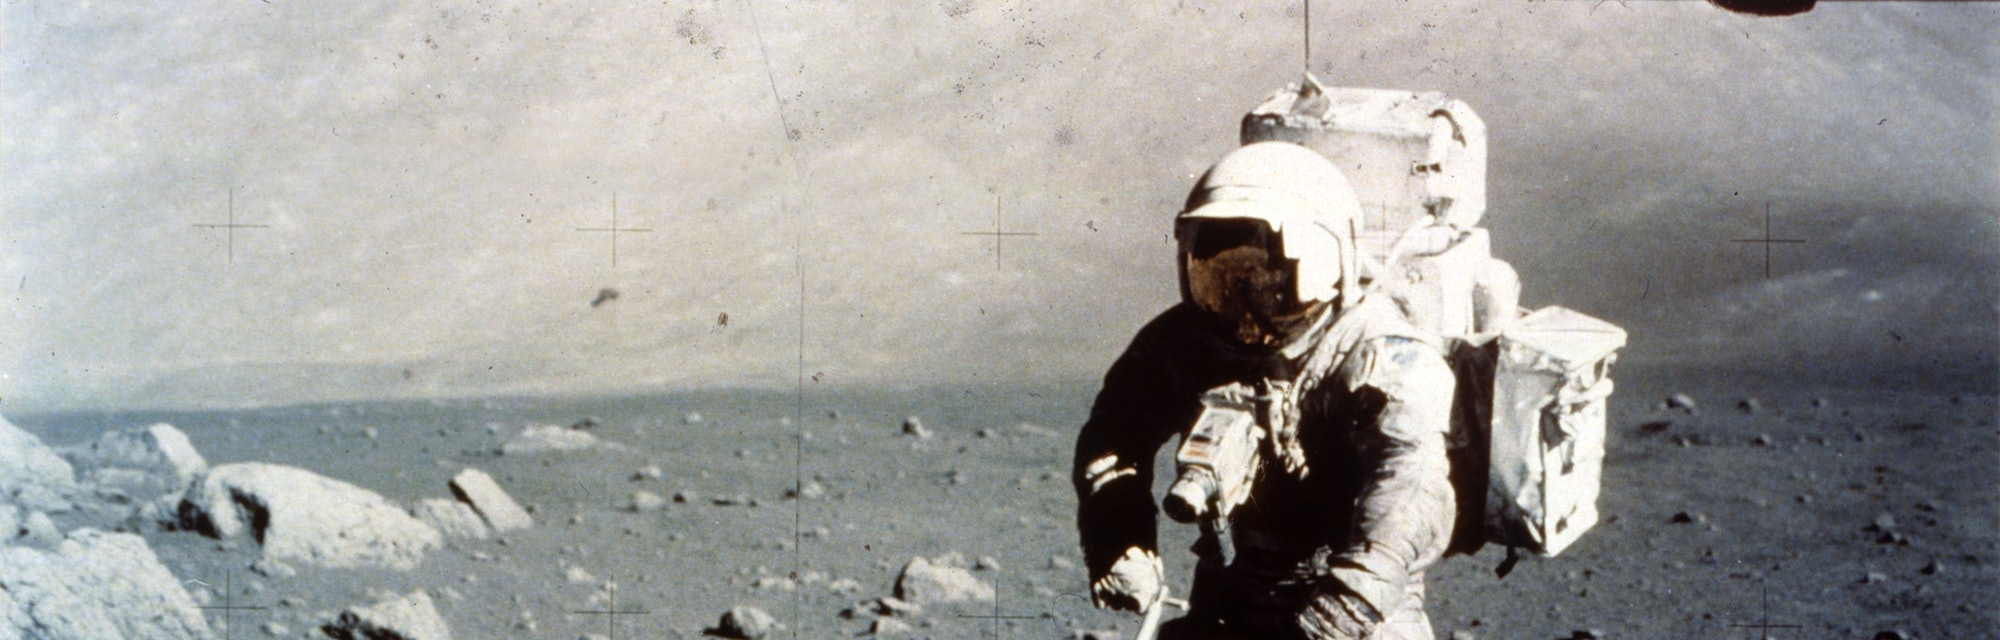 Harrison Schmitt works the scoop on the lunar surface, Apollo 17 mission